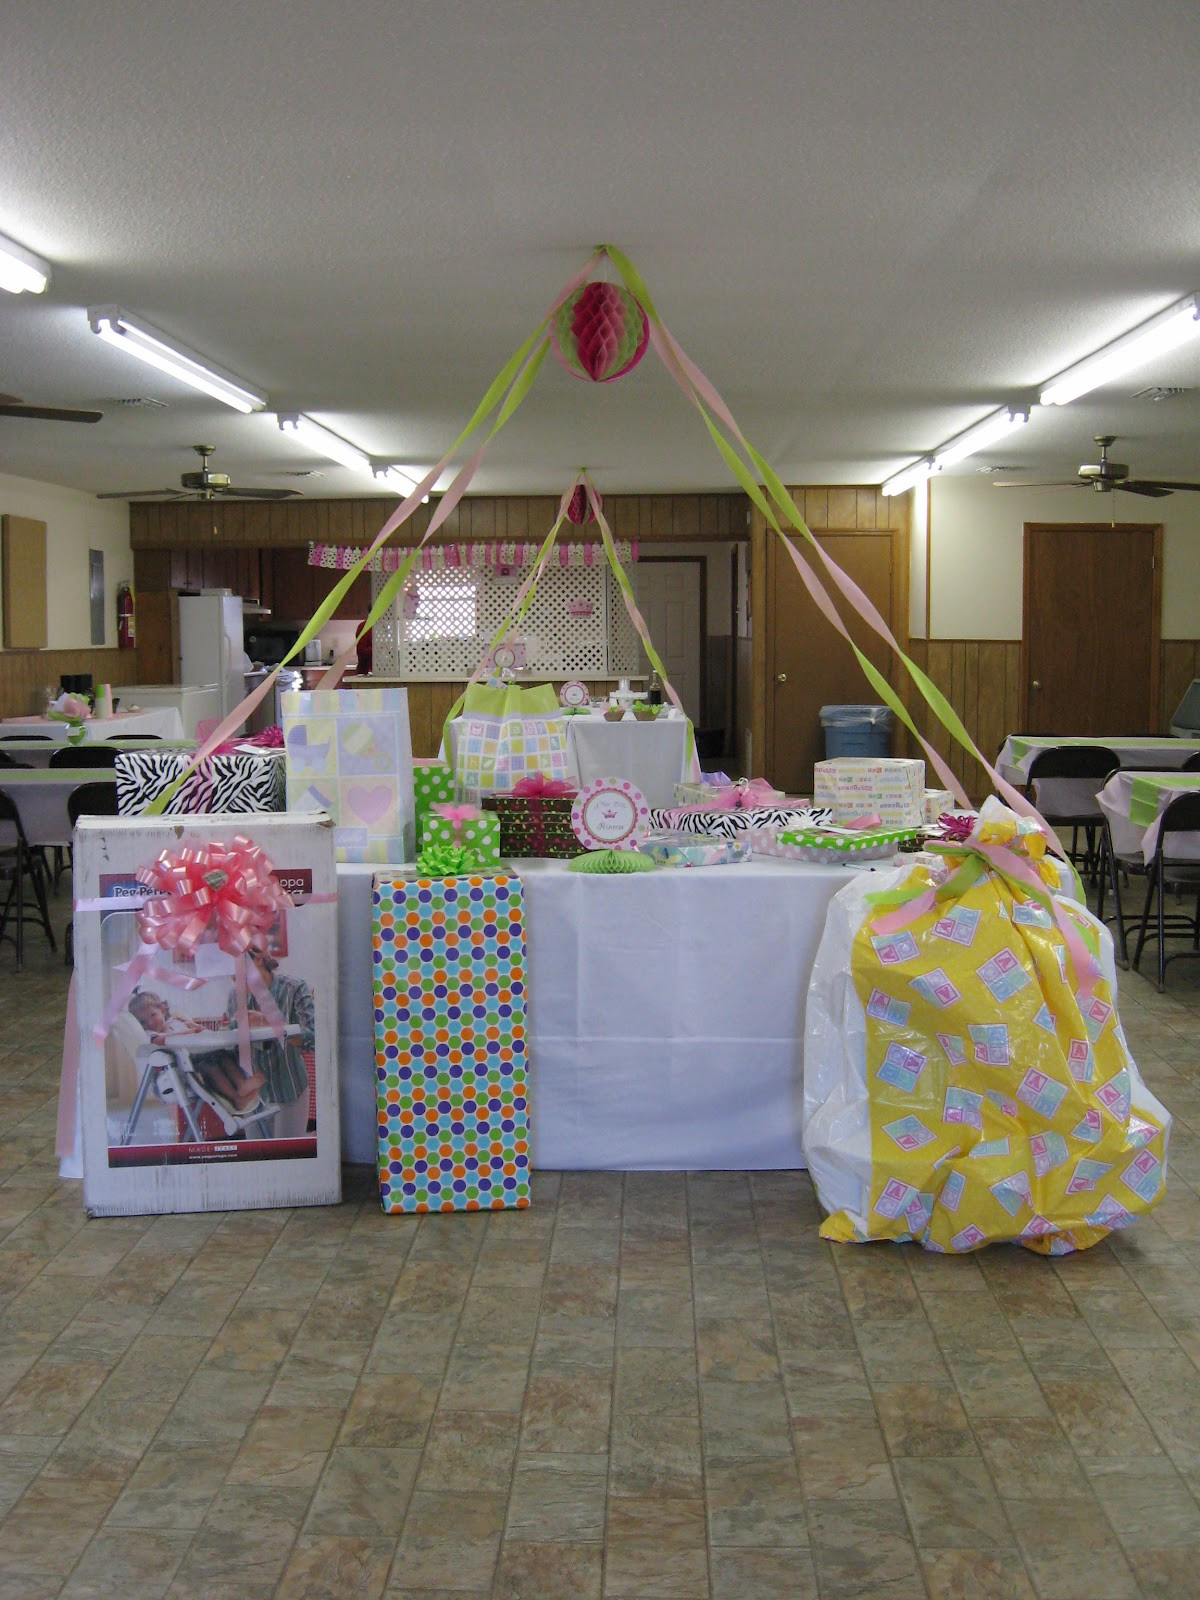 Decorating Ideas For Baby Shower Gift Table  A Home in the Country Baby Shower